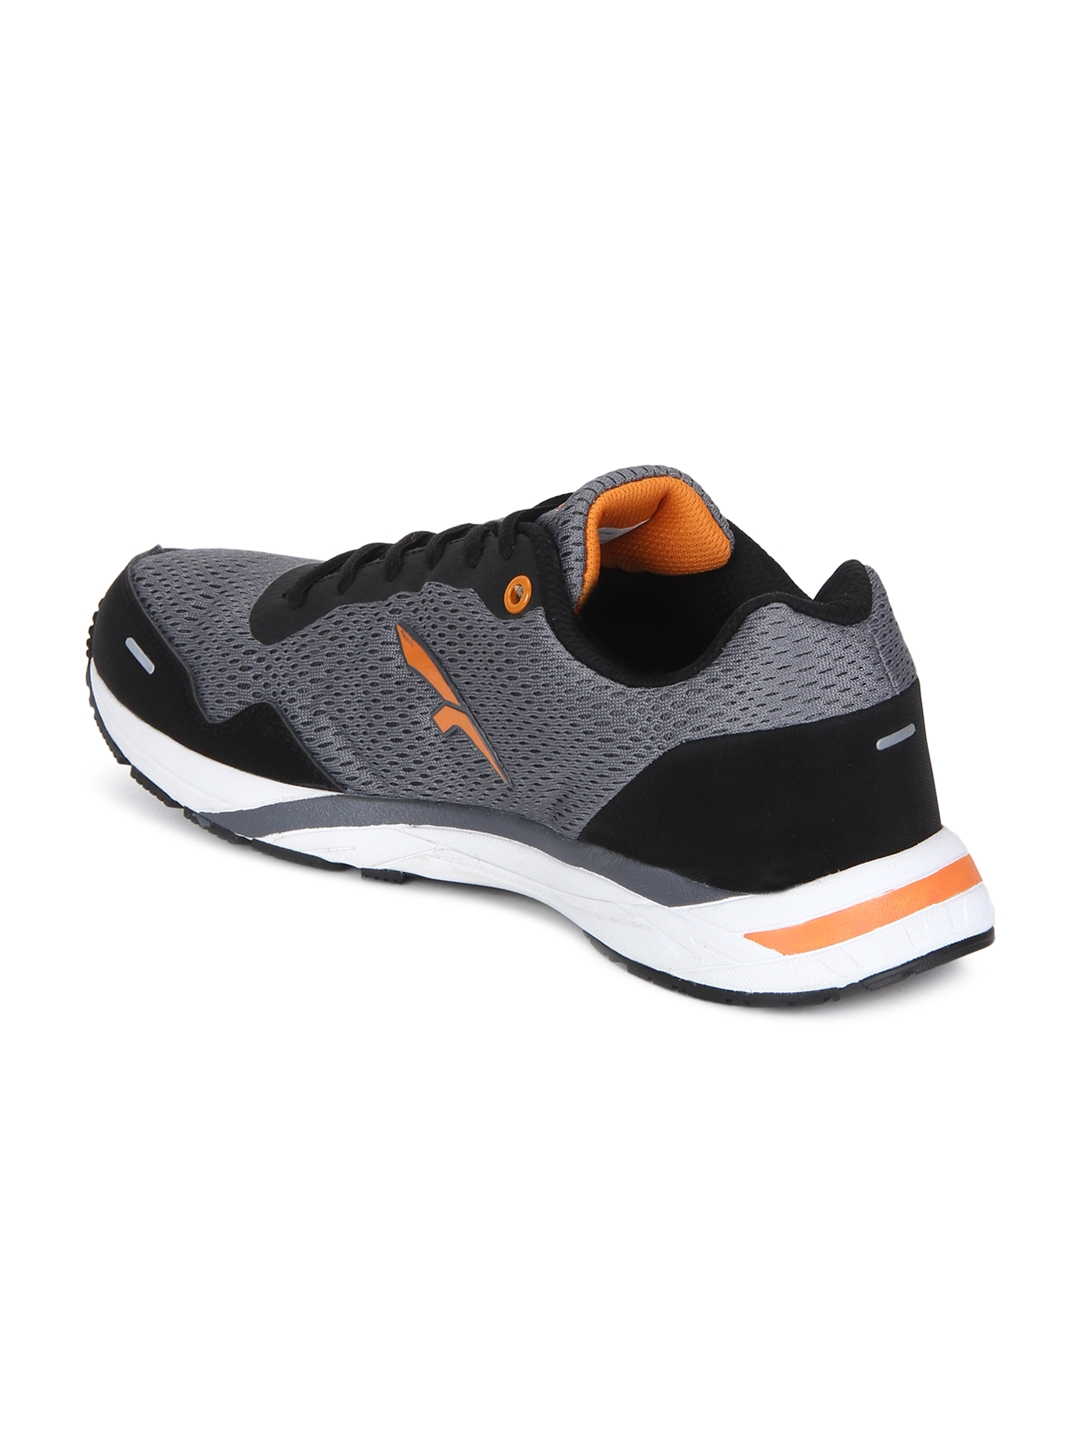 25c2eba5f72 Buy FURO By Red Chief Men Black   Grey Mesh Mid Top Running Shoes ...